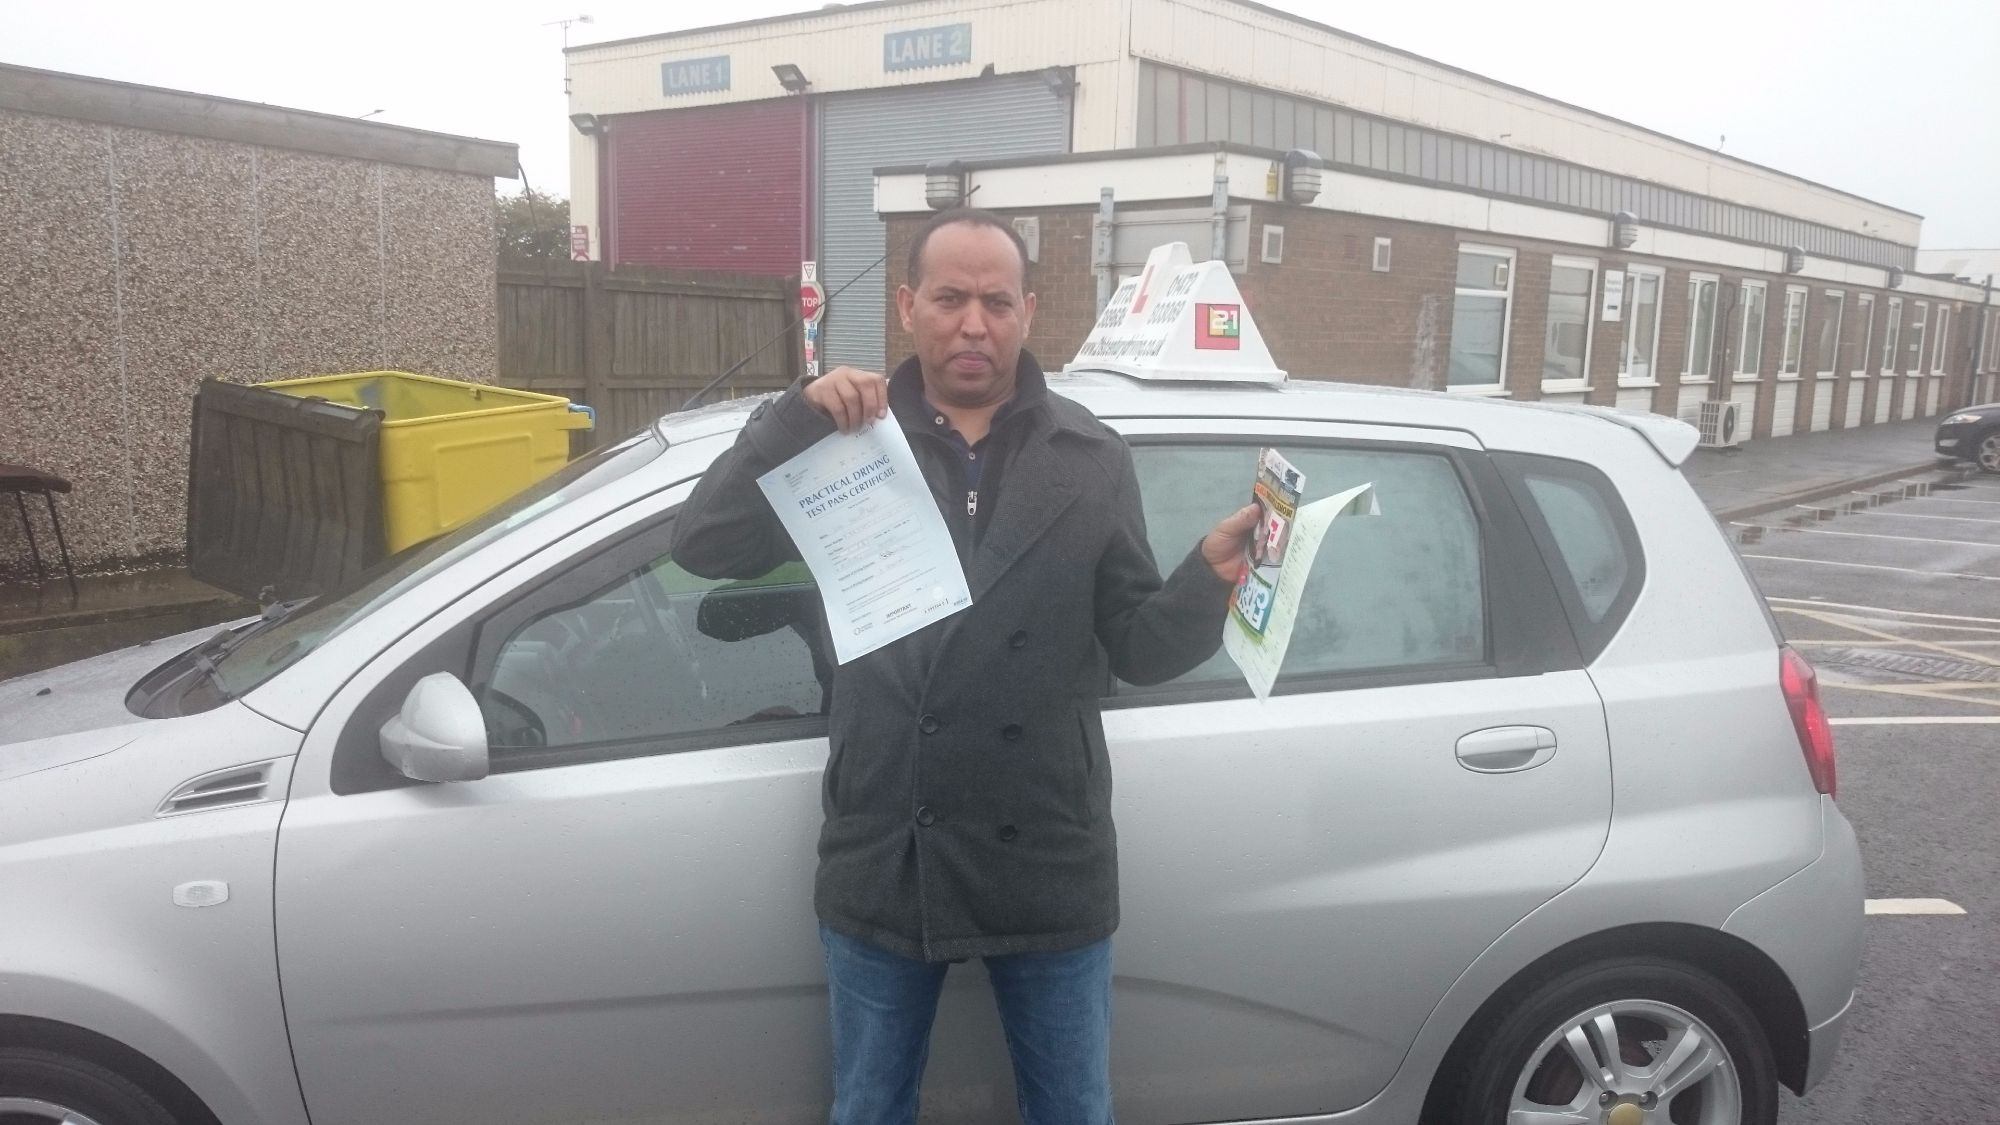 Dr Luel Abay took his driving lessons and passes his test in Grimsby with 21st Century Driving